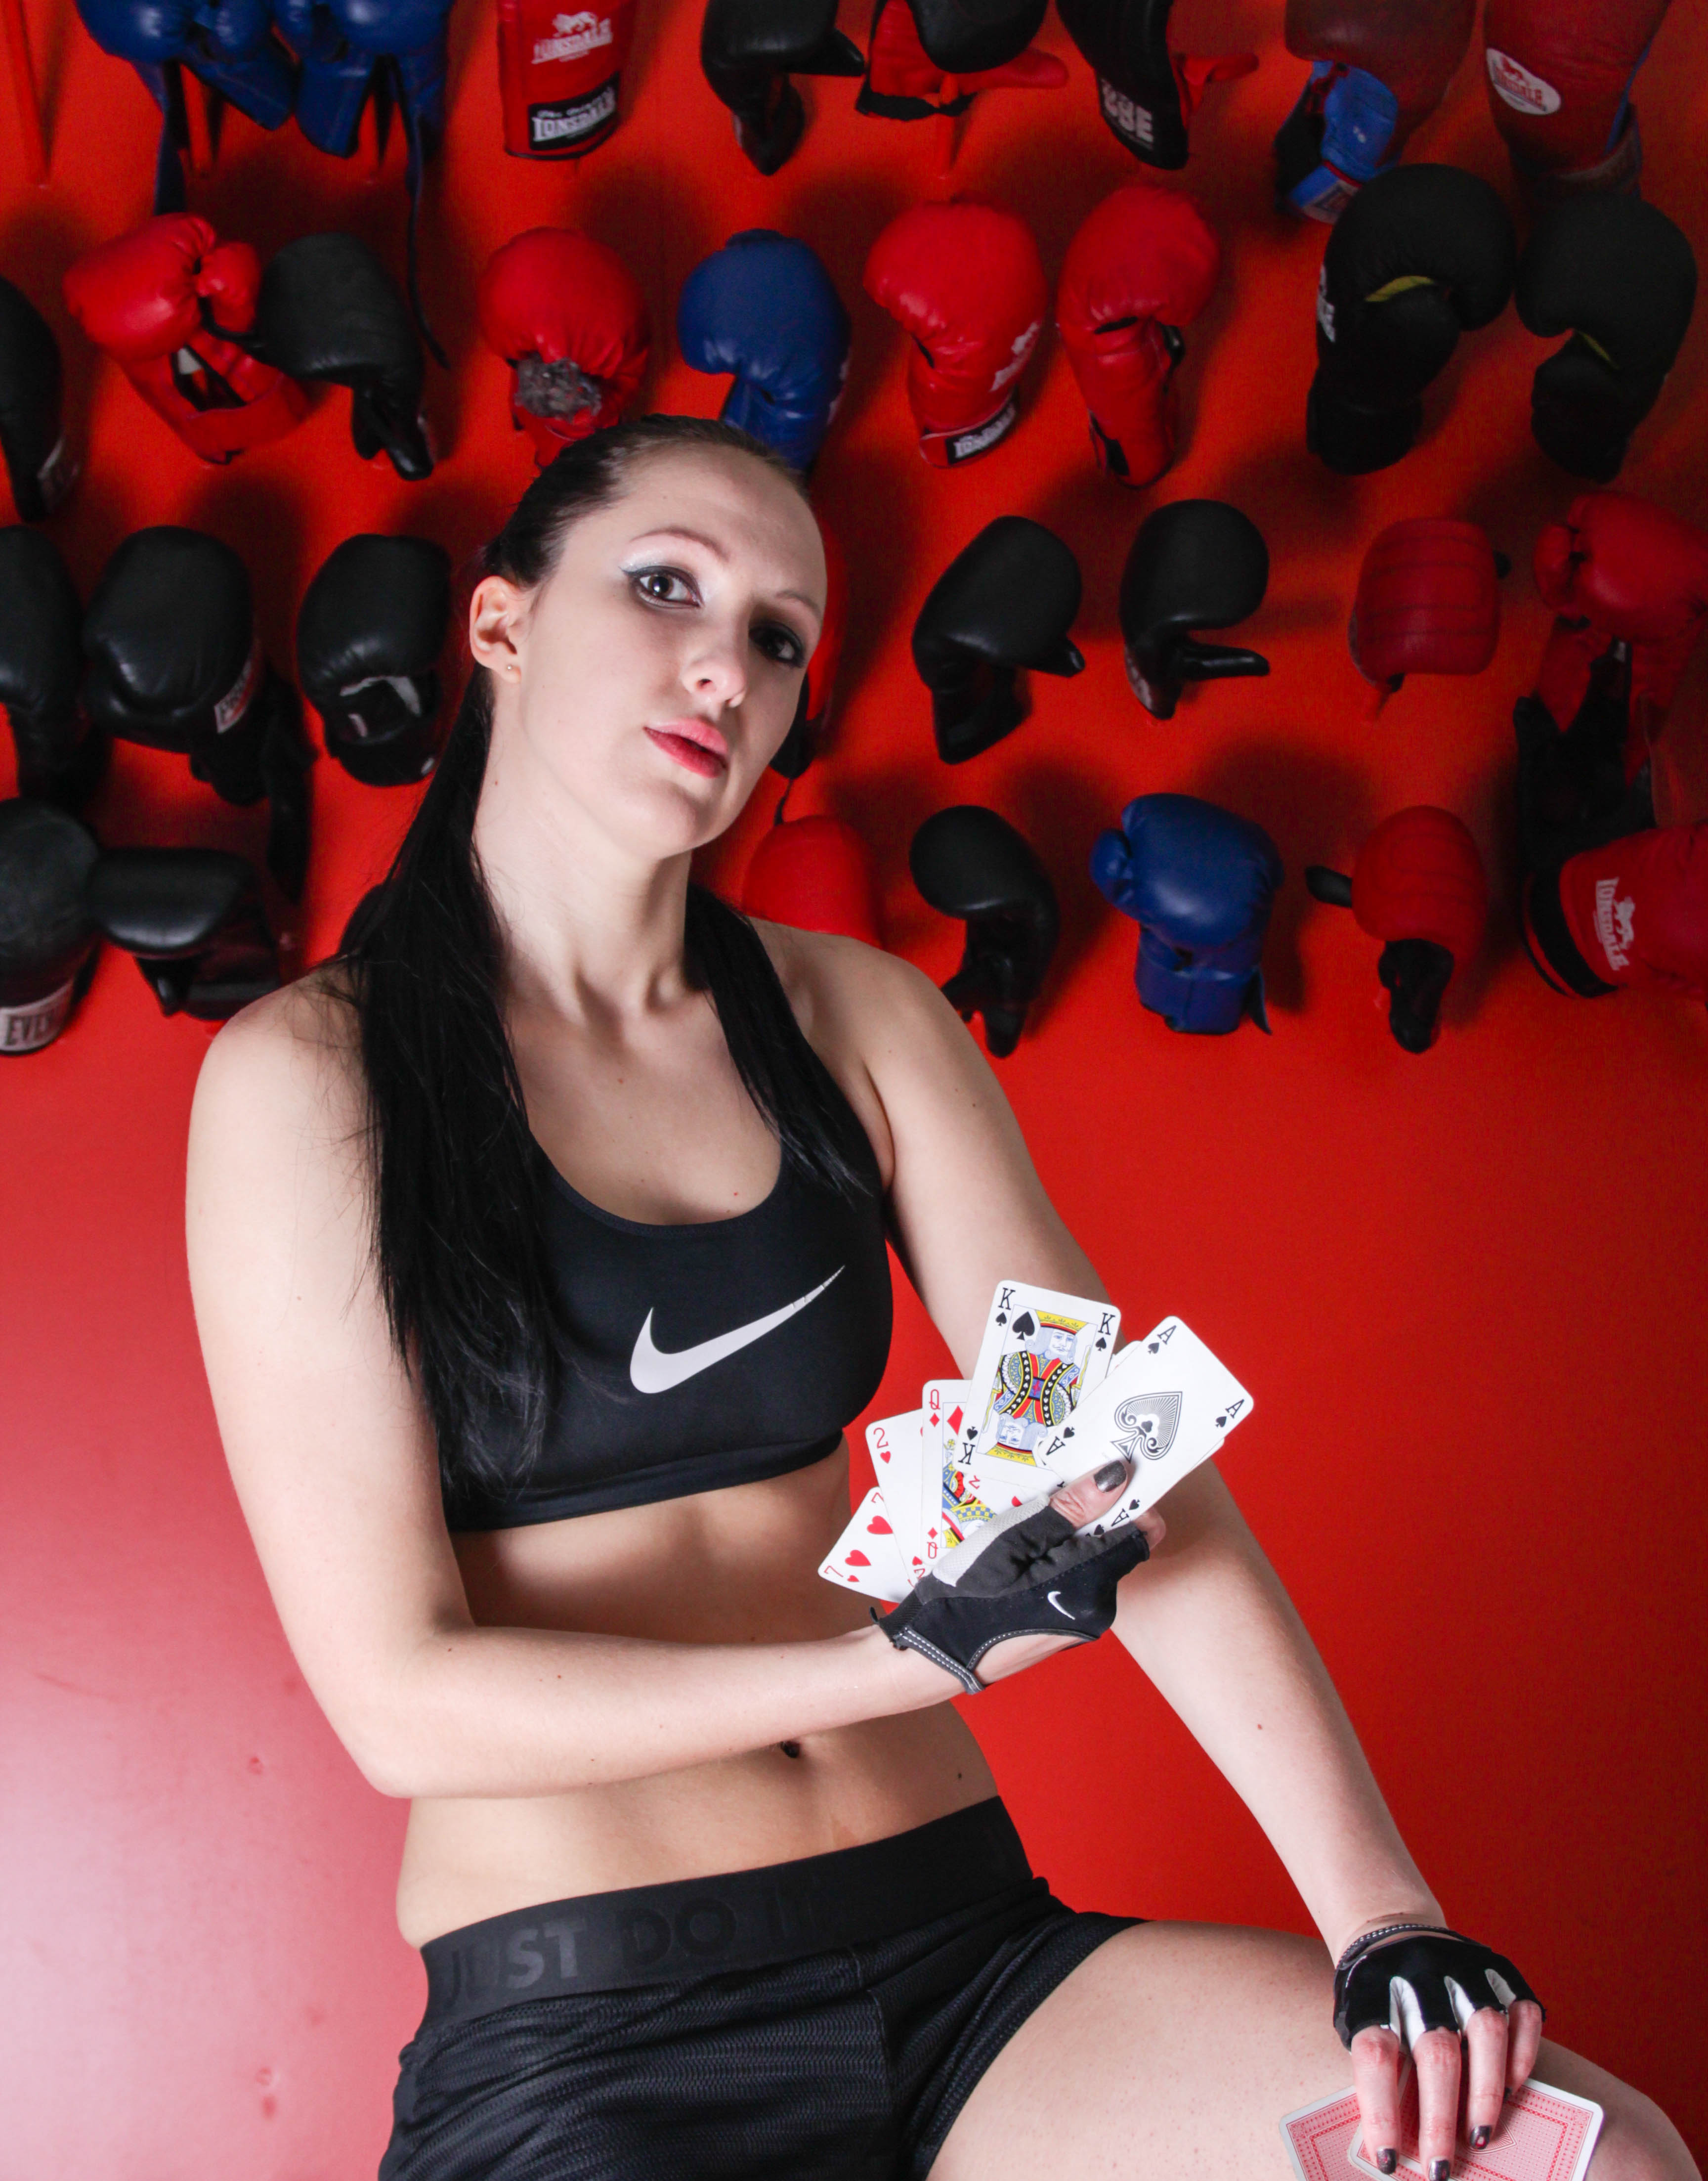 Girl Power, Ace, Attitude, Boxing, Cancer, HQ Photo